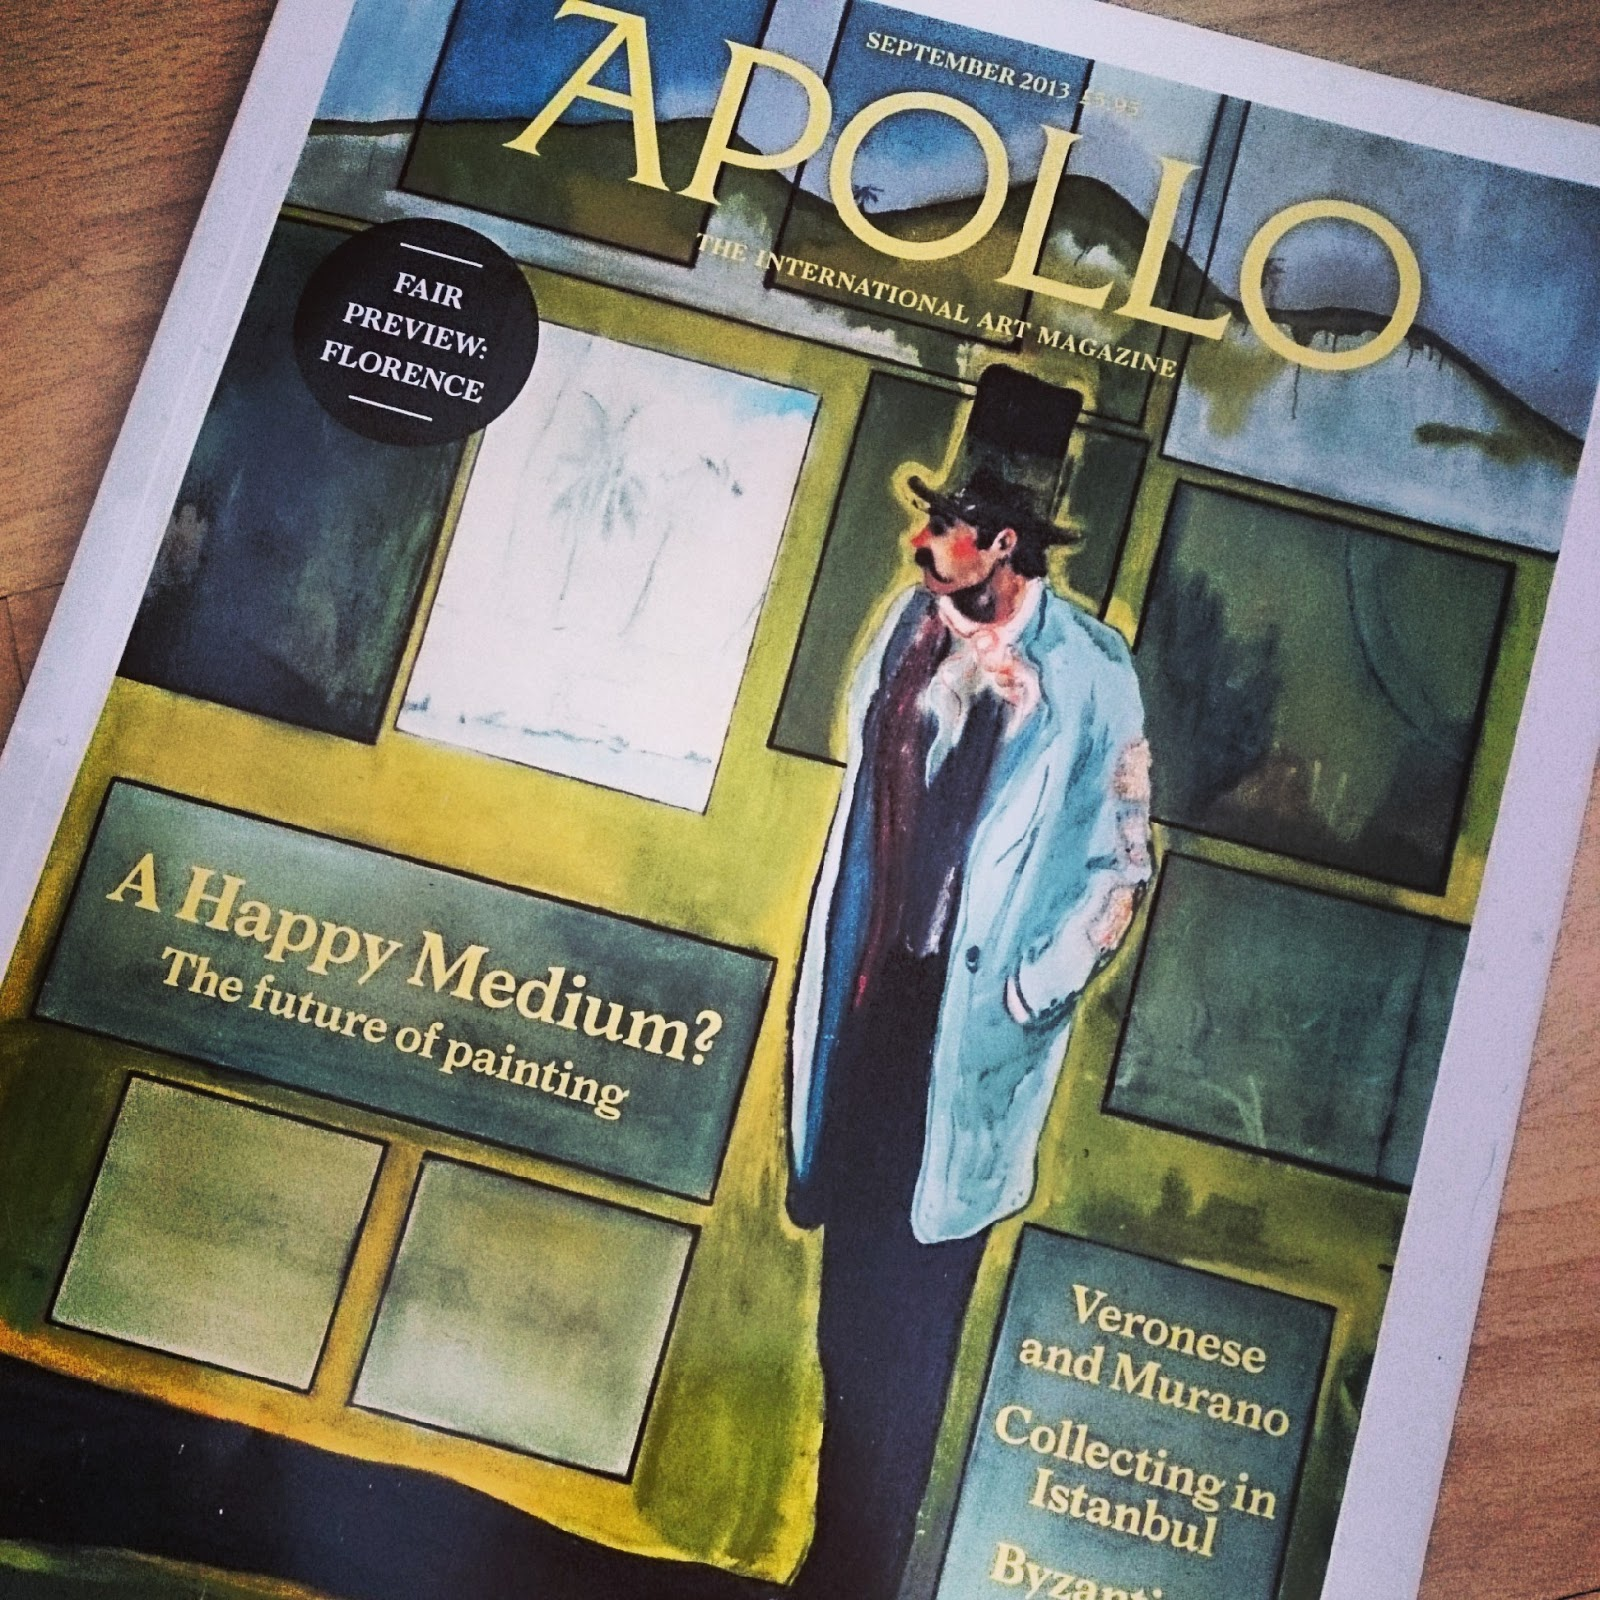 Apollo Magazine Internship